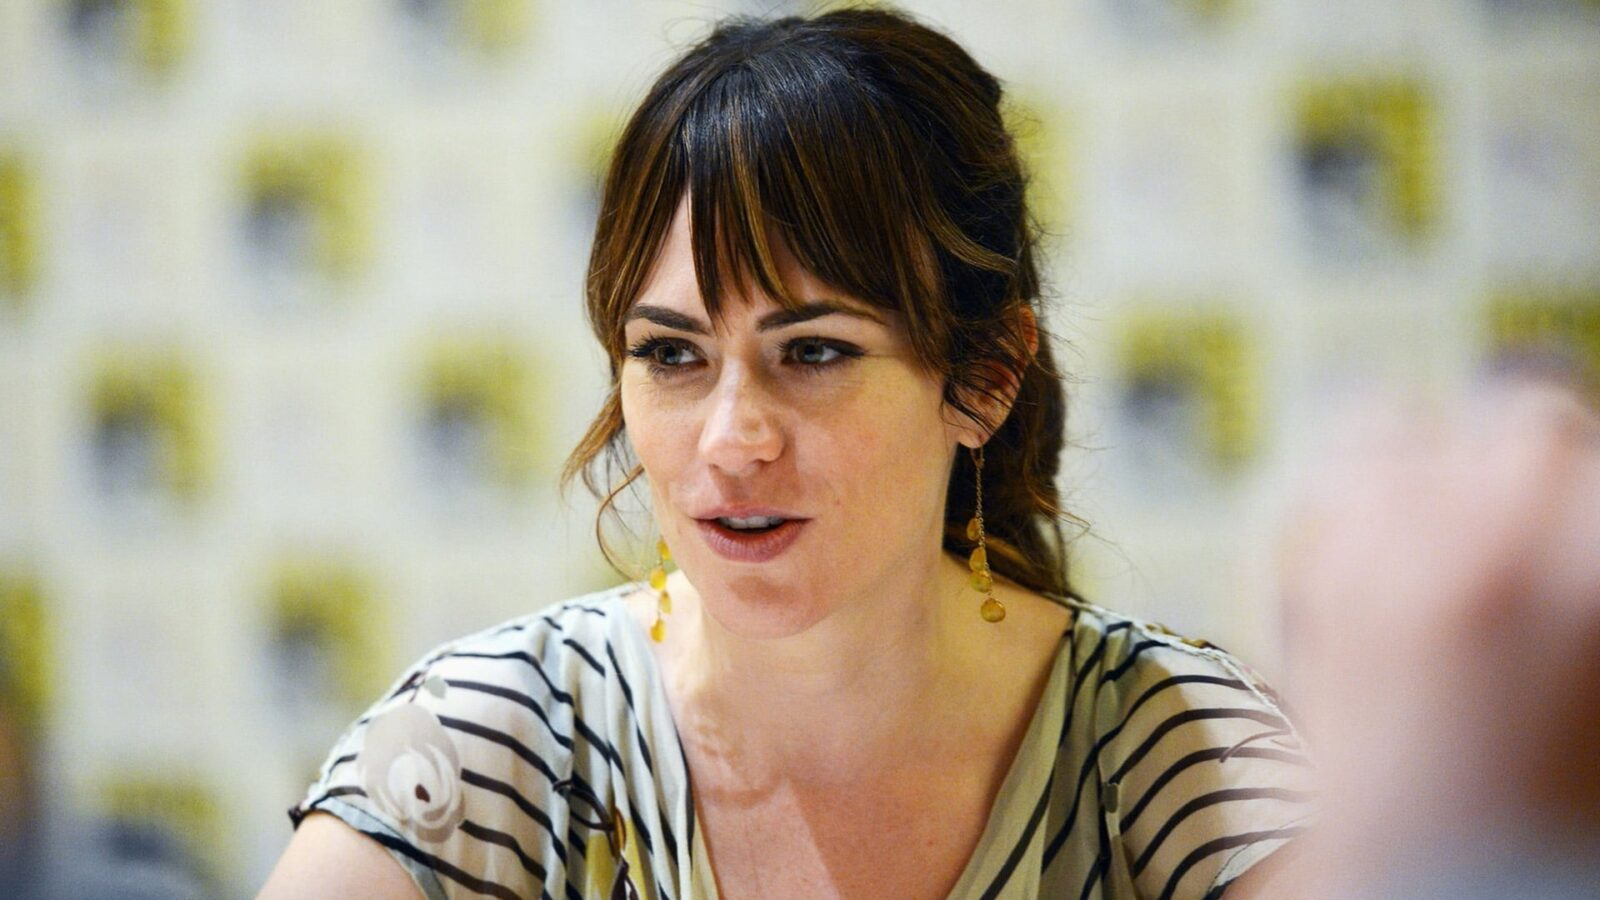 Maggie Siff 4k wallpaper download